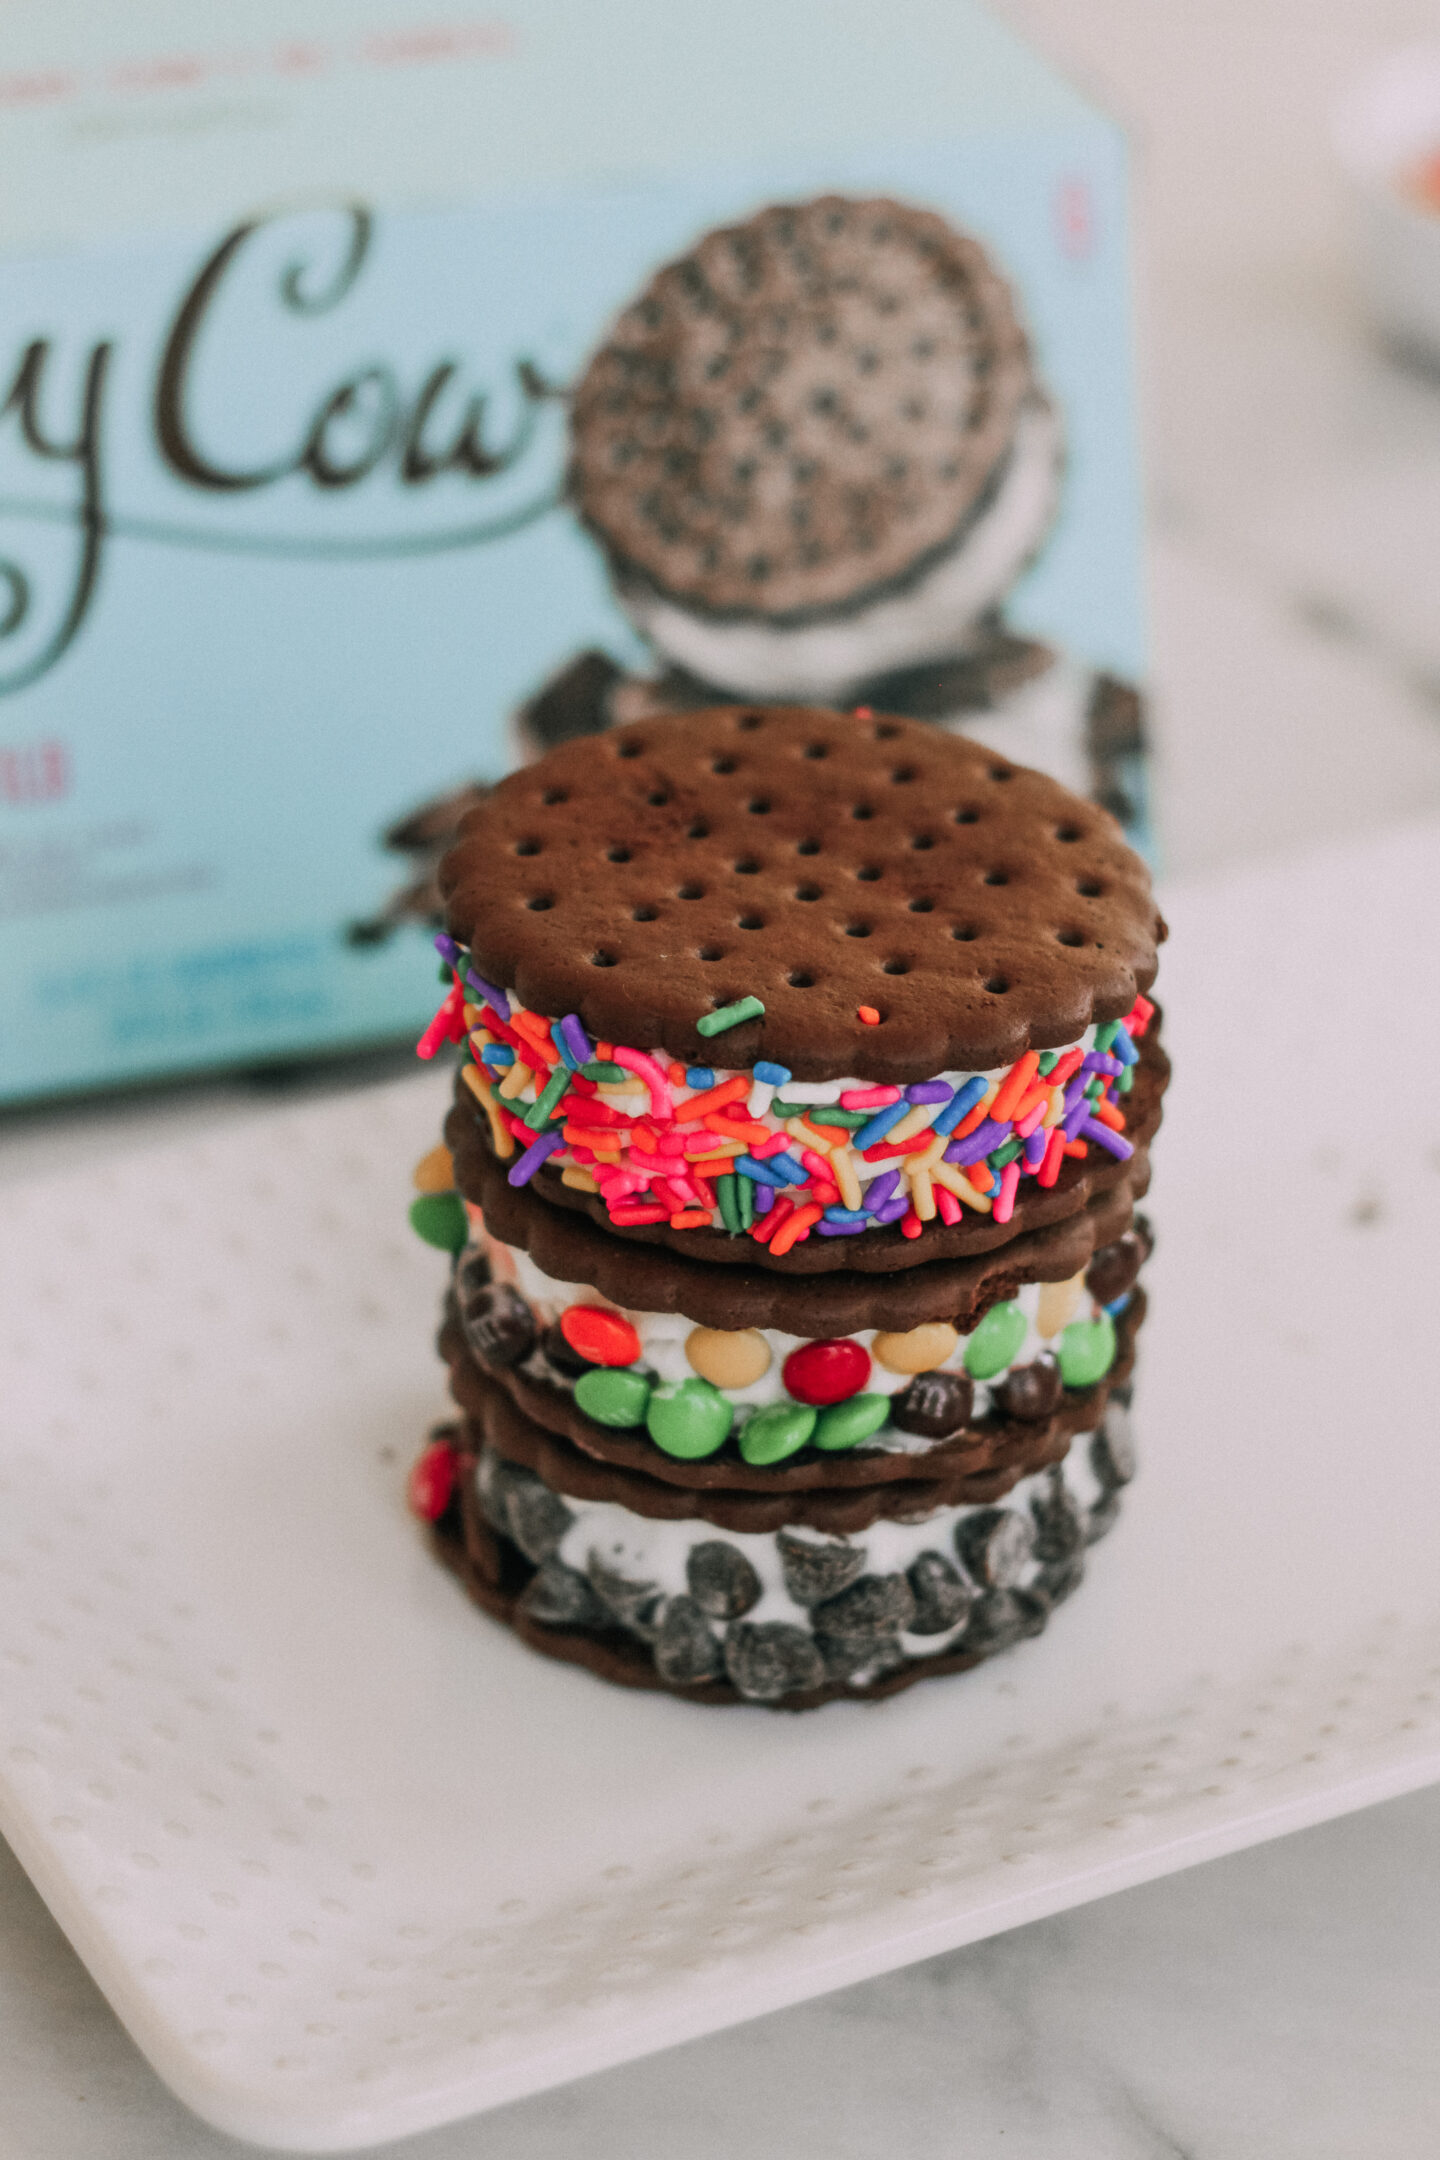 Skinny Cow Vanilla Gone Wild Ice Cream Sandwiches - my favorite sweet treat